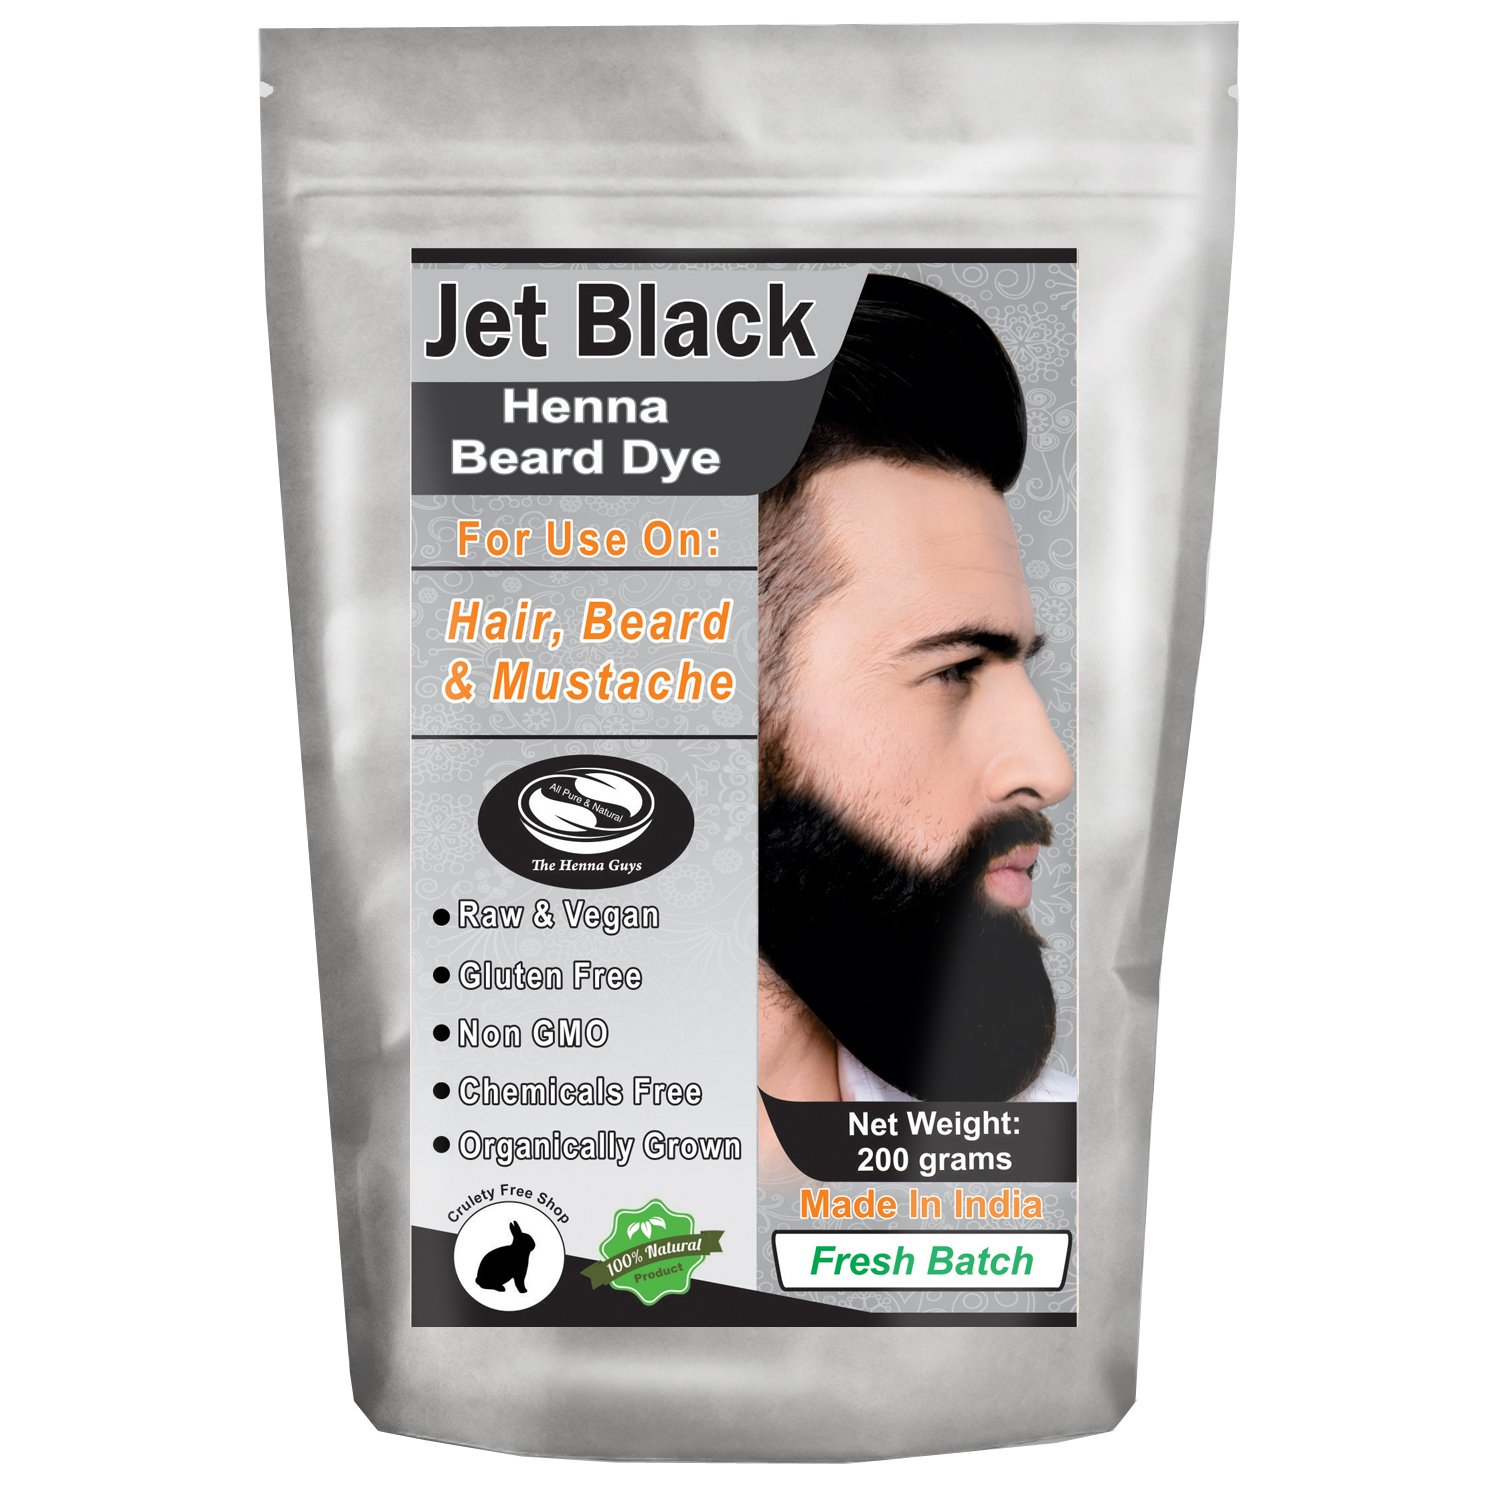 1 Pack of Jet Black Henna Beard Dye for Men - 100% Natural & Chemical Free Dye for Hair, Beard & Mustache - The Henna Guys (2 Step Process) by The Henna Guys